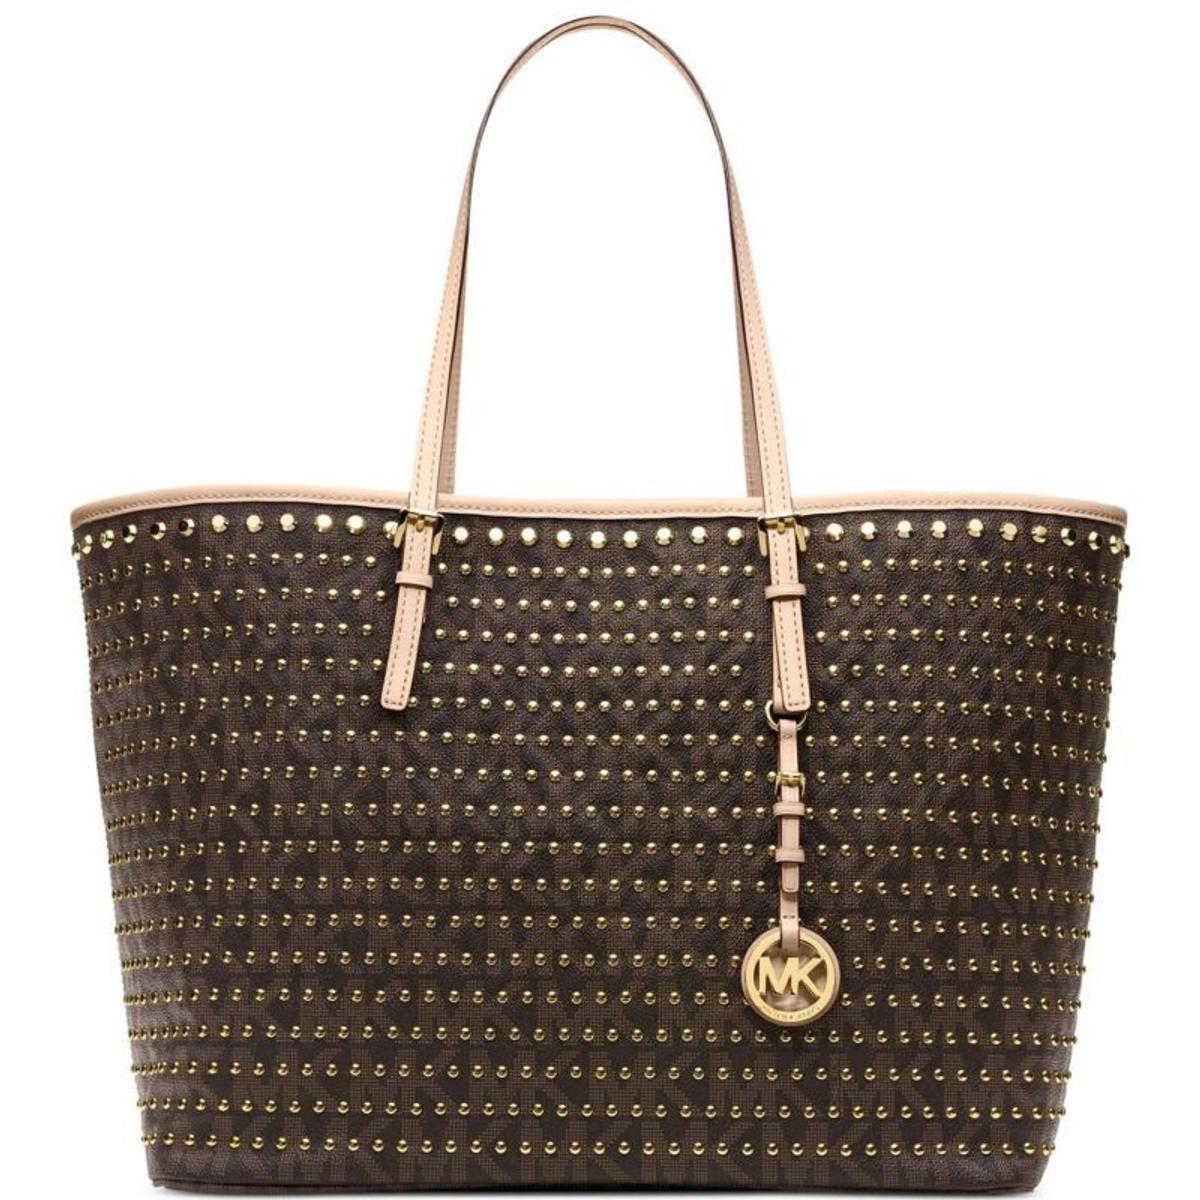 340abf14f737 Michael Kors Studded Bag And Matching Purse In Nw2 London For